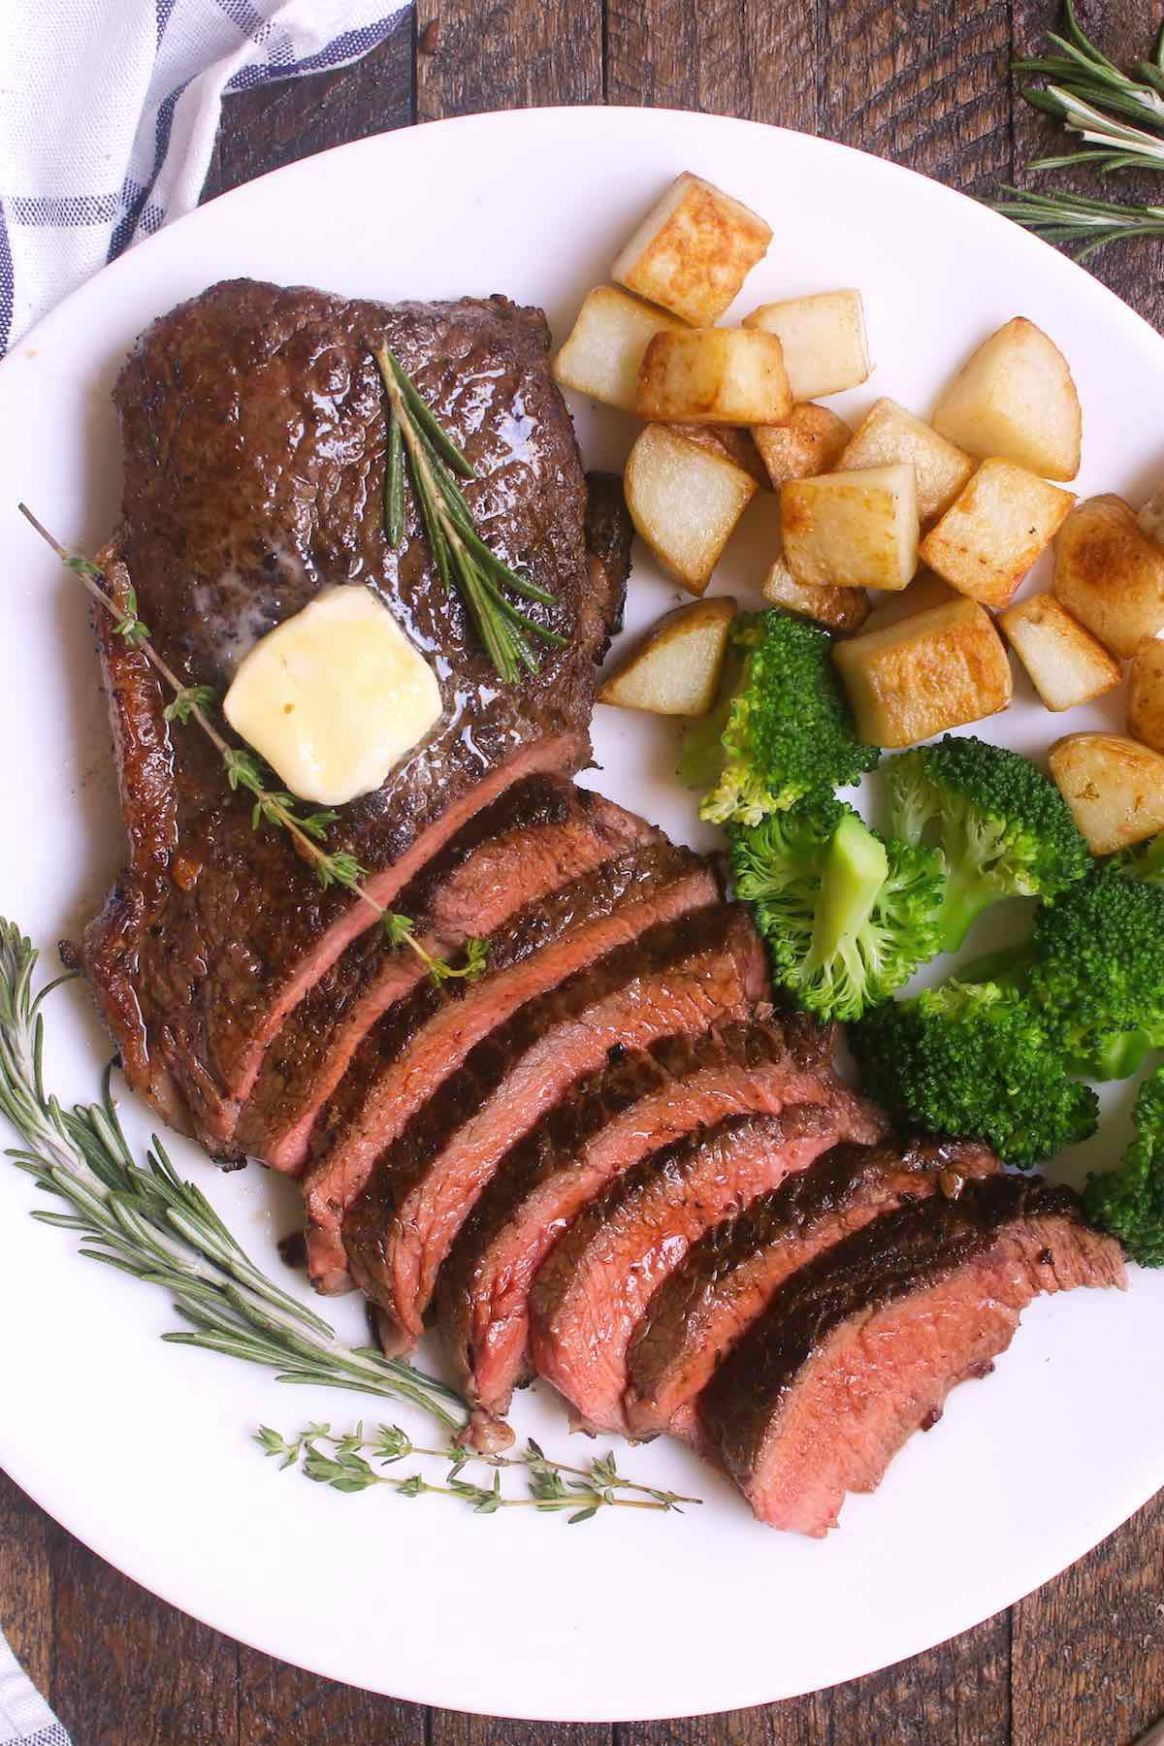 Pan Seared Sirloin Steak - TipBuzz